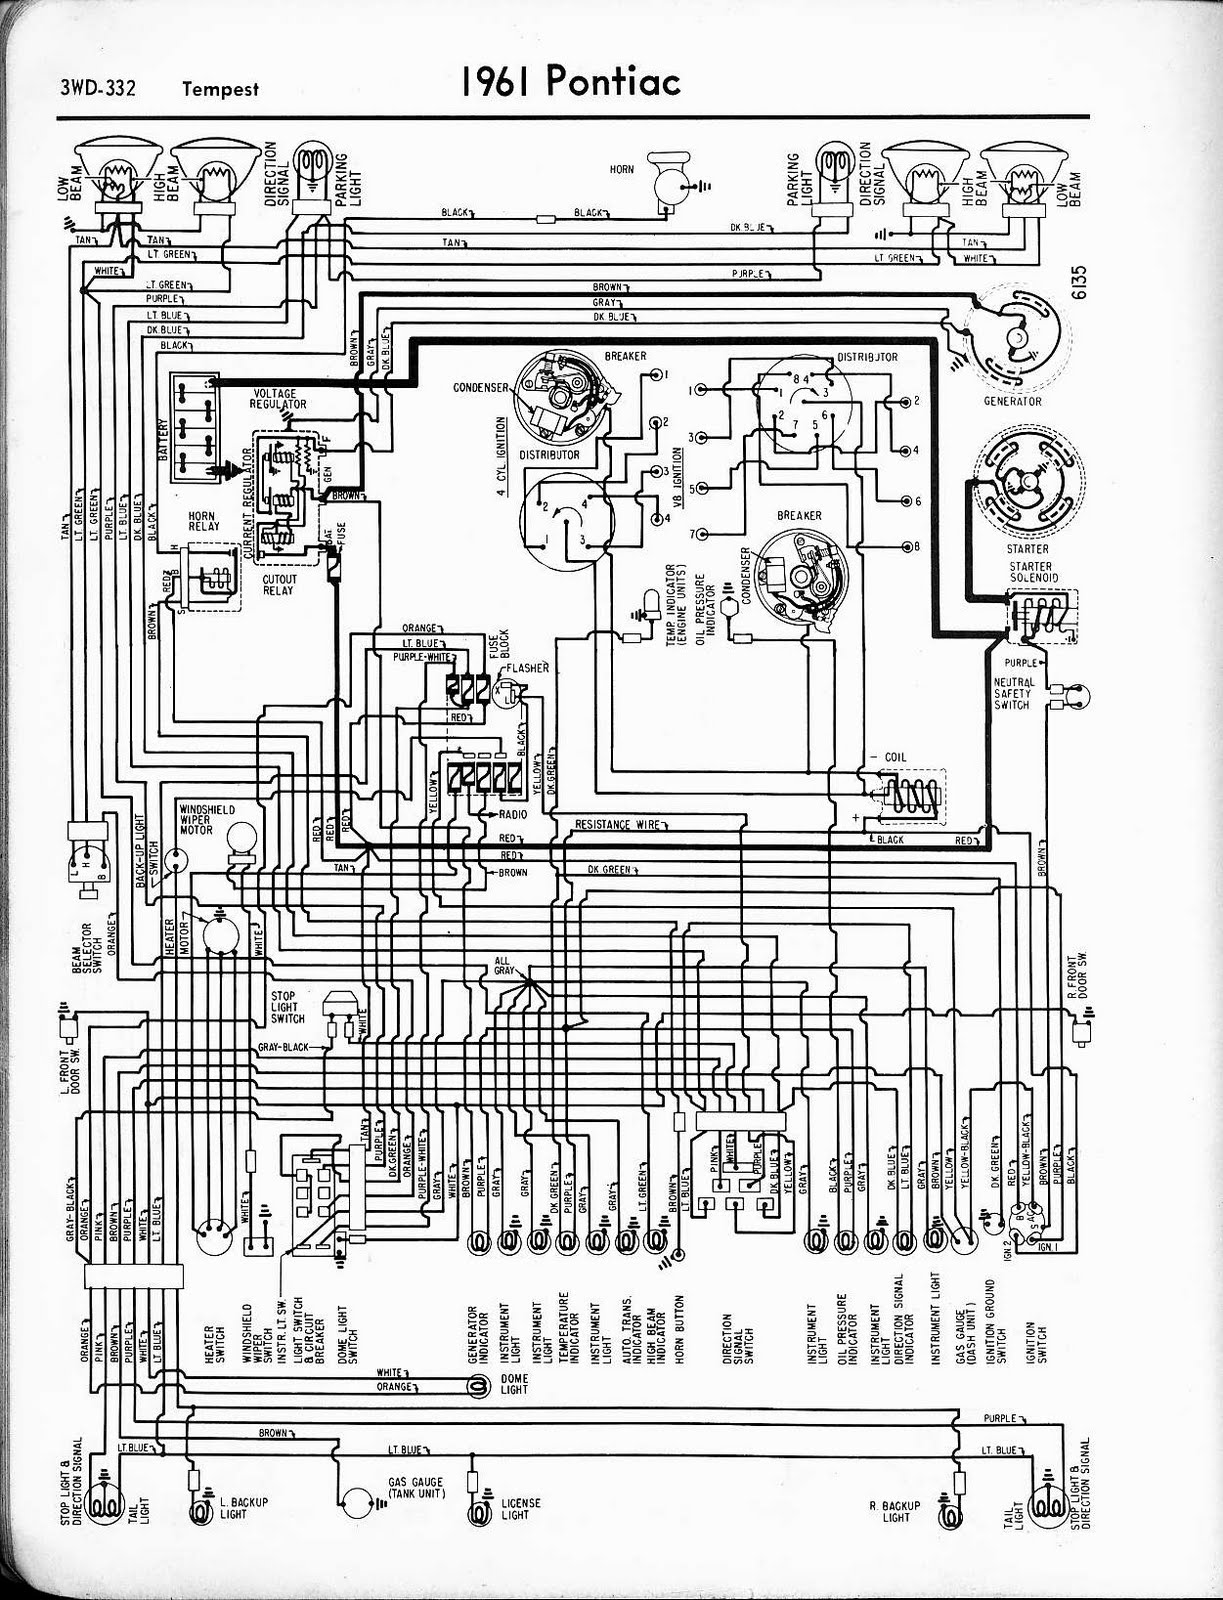 69 Firebird Dash Wiring Diagram For Electric Car Charger Free Auto 1961 Pontiac Tempest